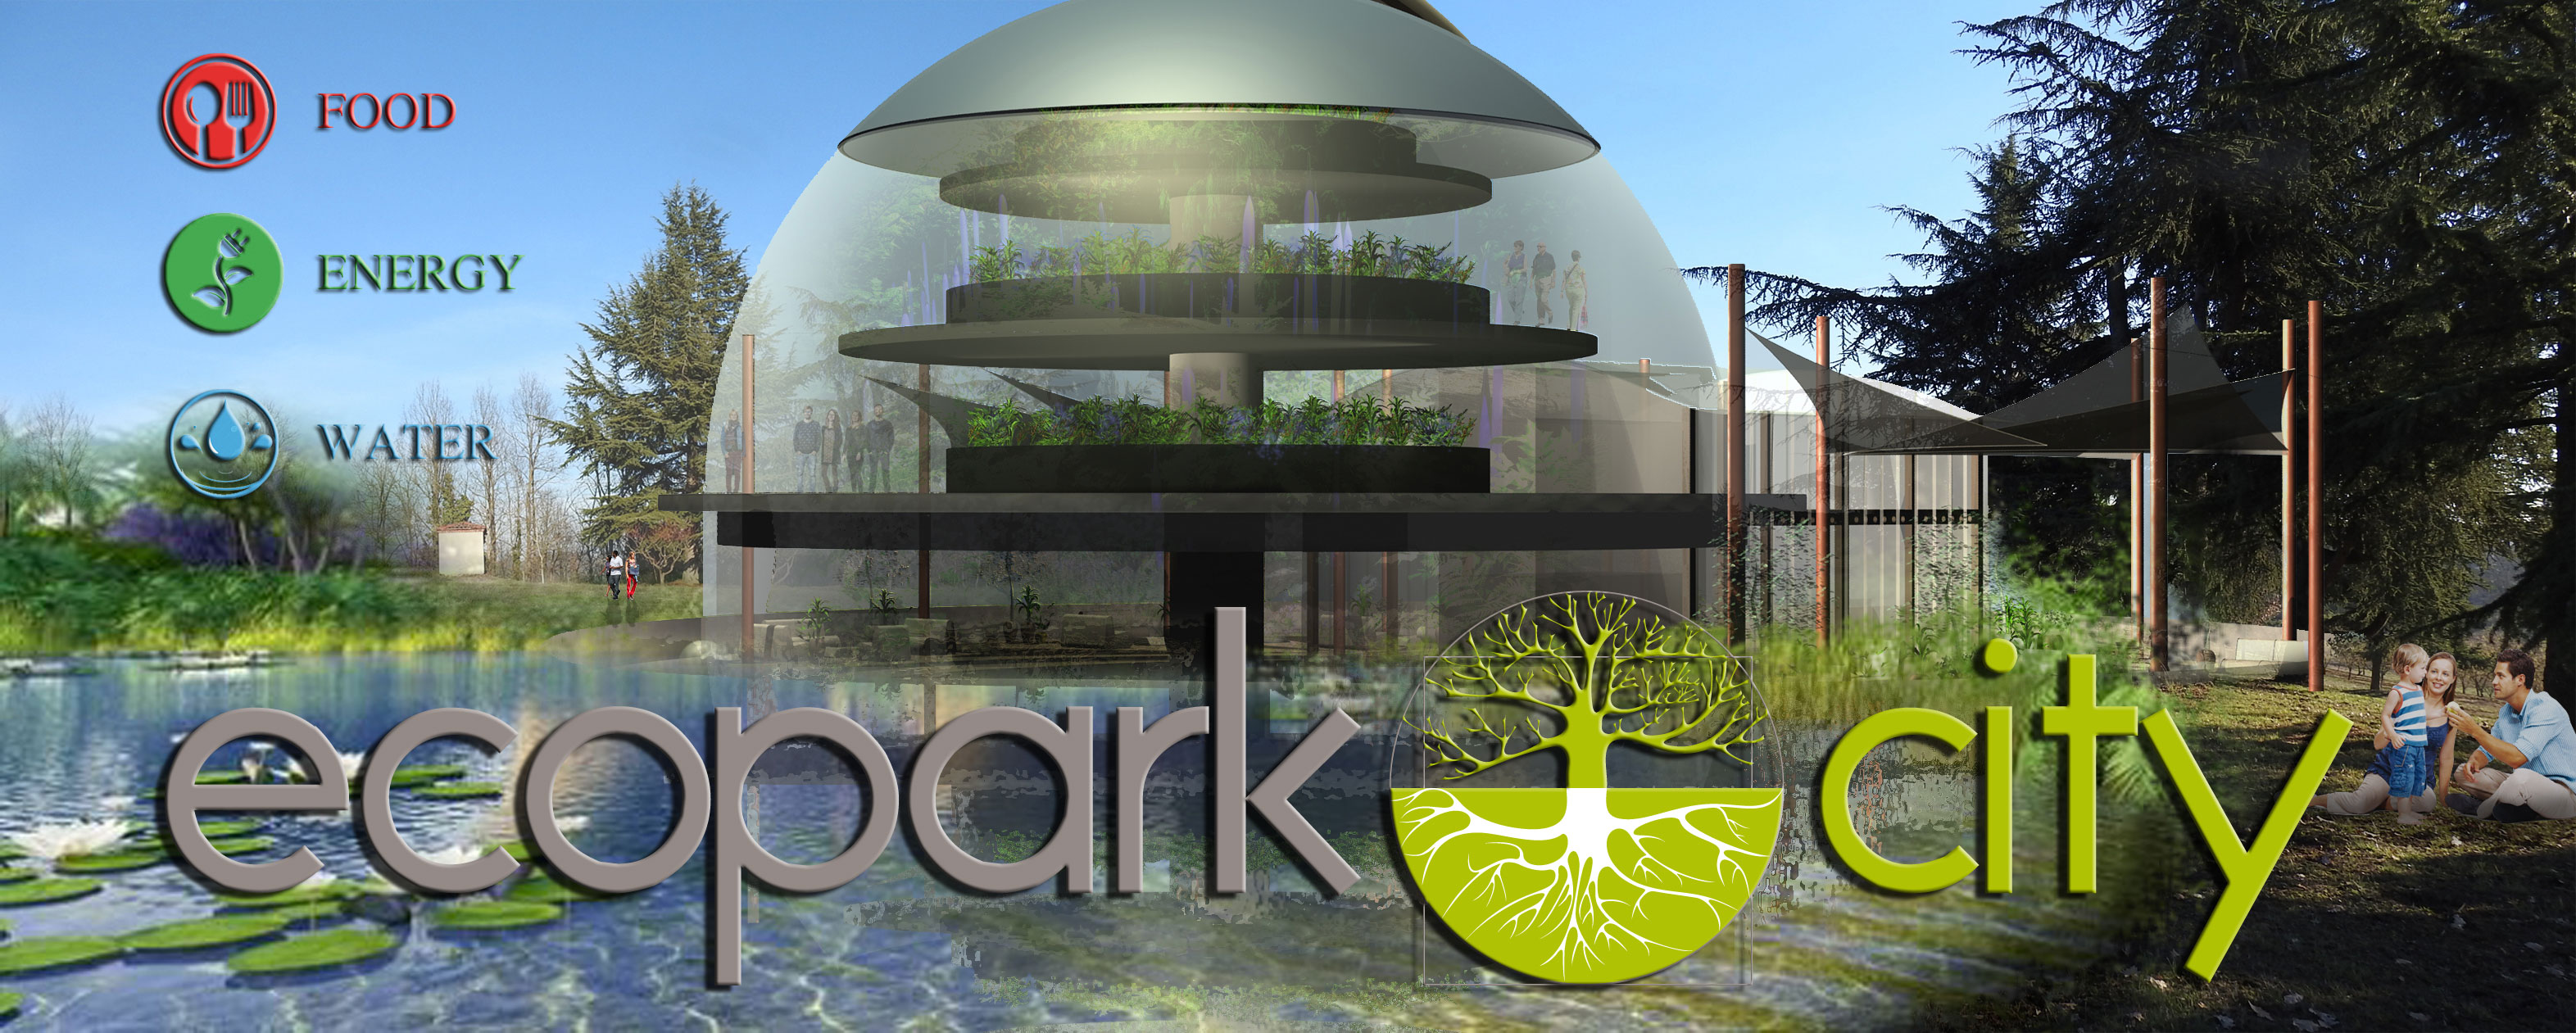 ECO-PARCK-CITY-WEB